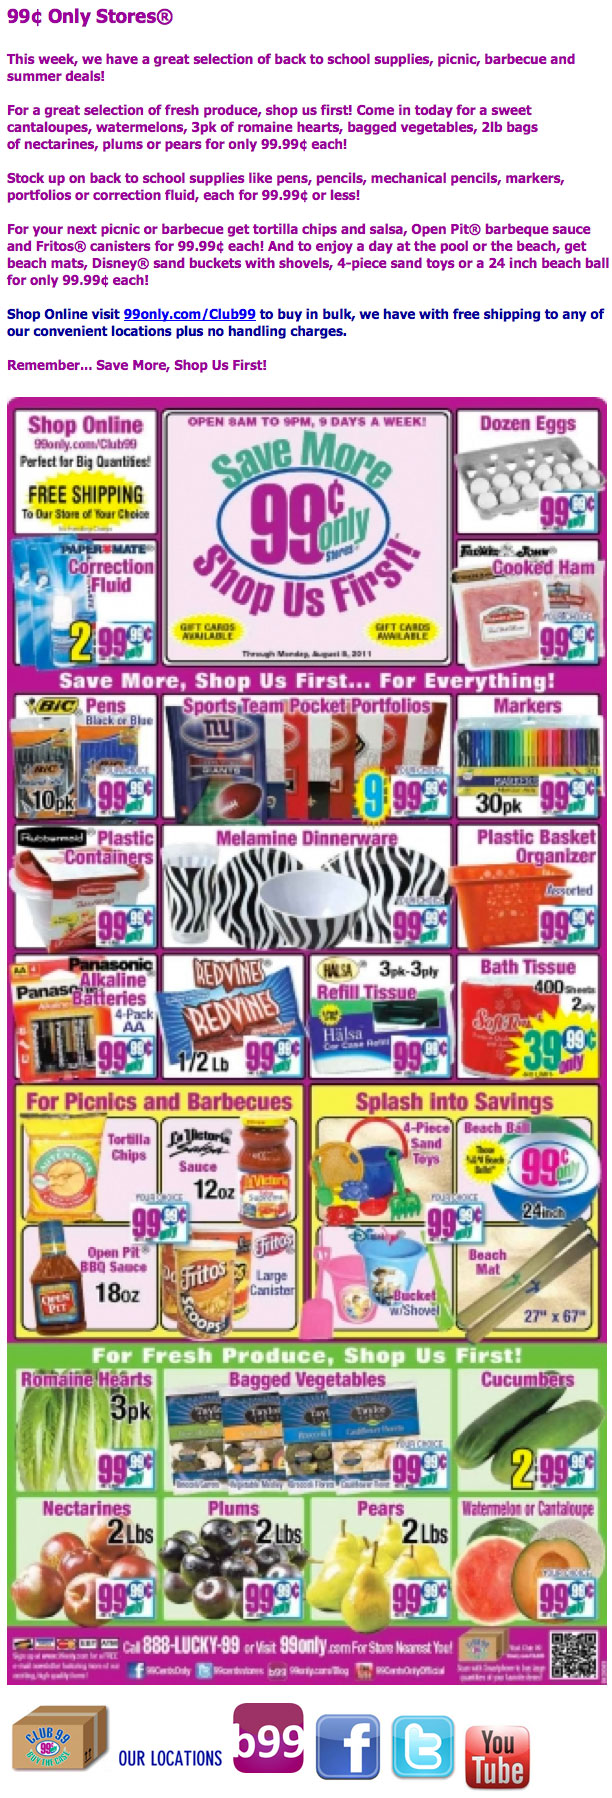 January Unsubscribe List Cartier Ralphs 99 Cent Only Store